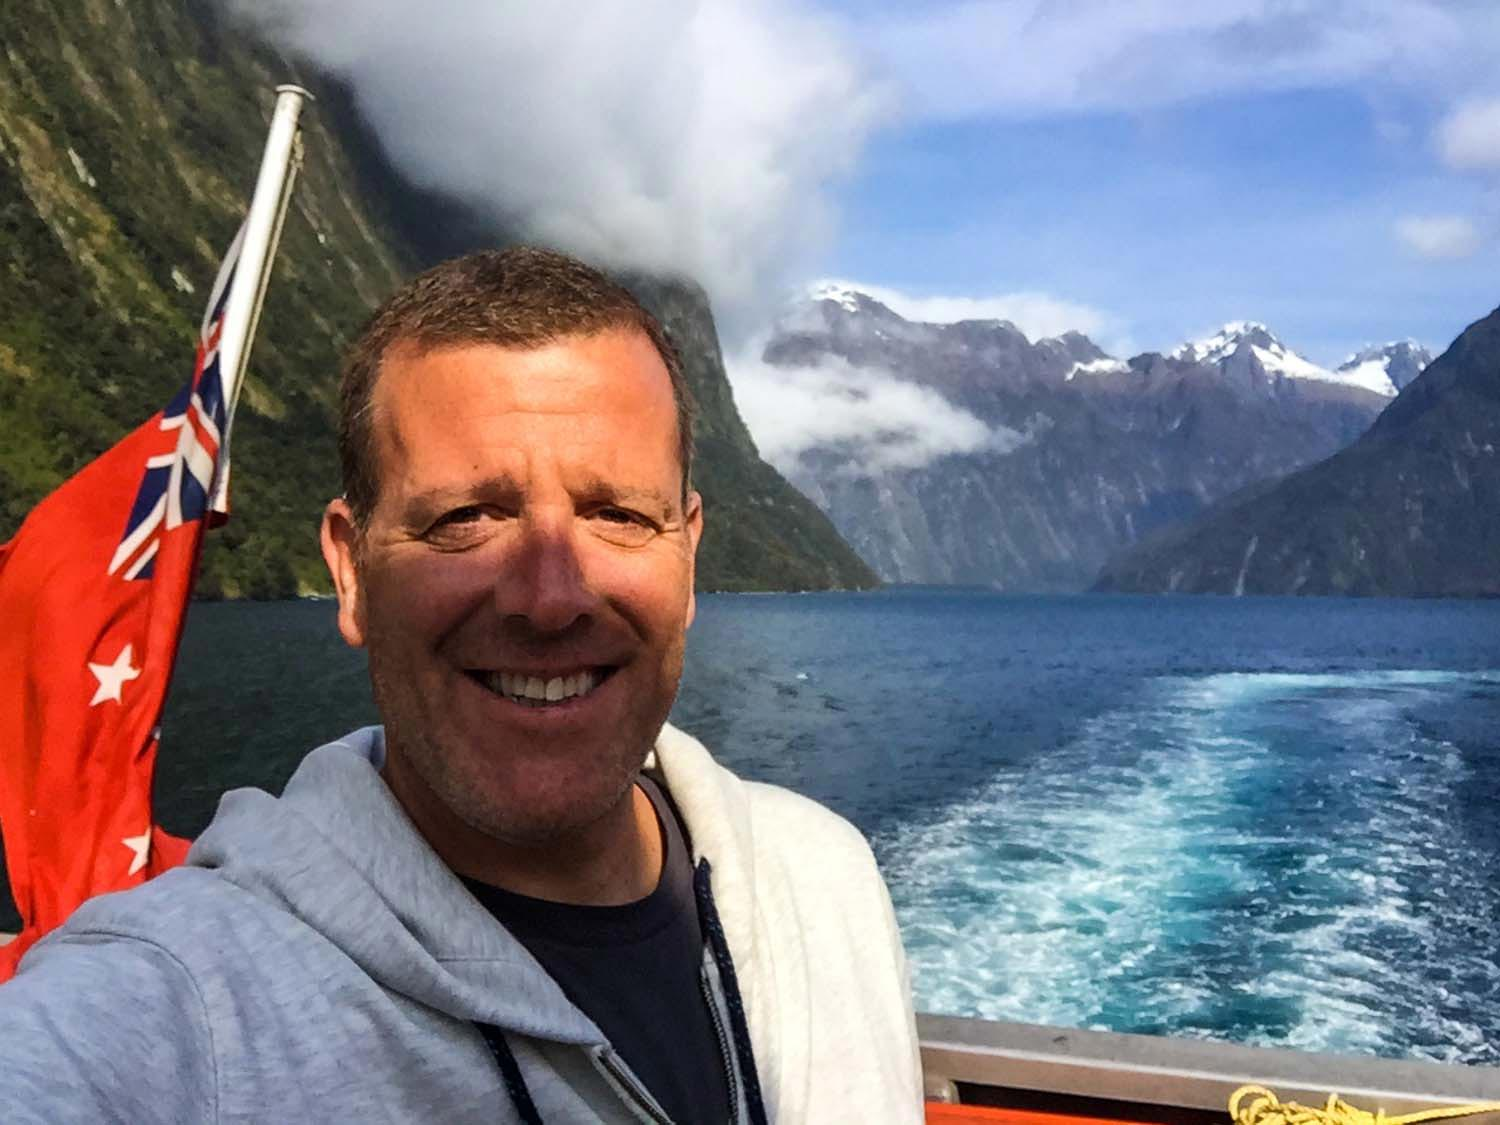 Milford Sound in New Zealand - Michael selfie with mountains in the background